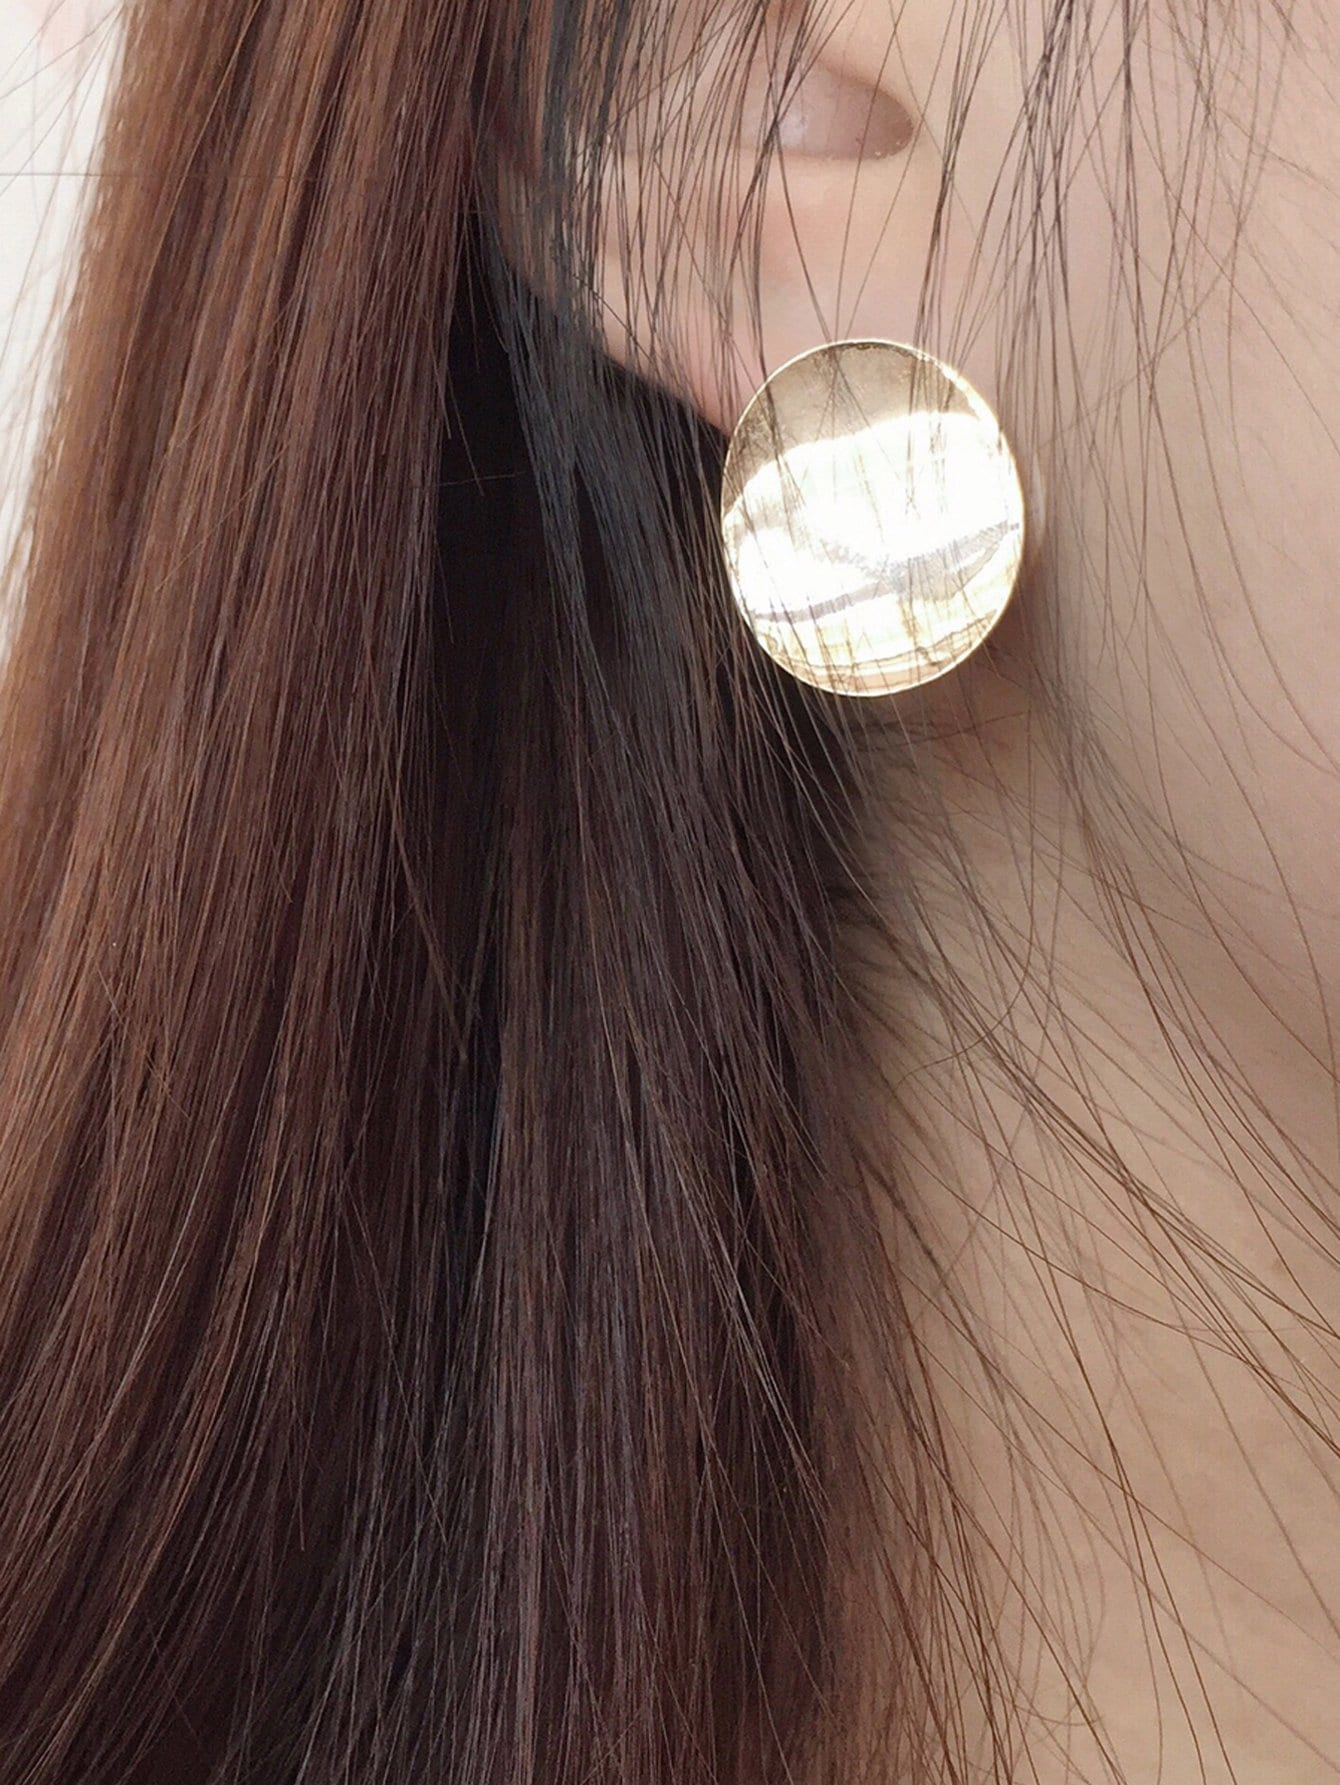 flat magnify expand studs earring gold stud zoom wall to roll basement disc tiny over these image circle large description